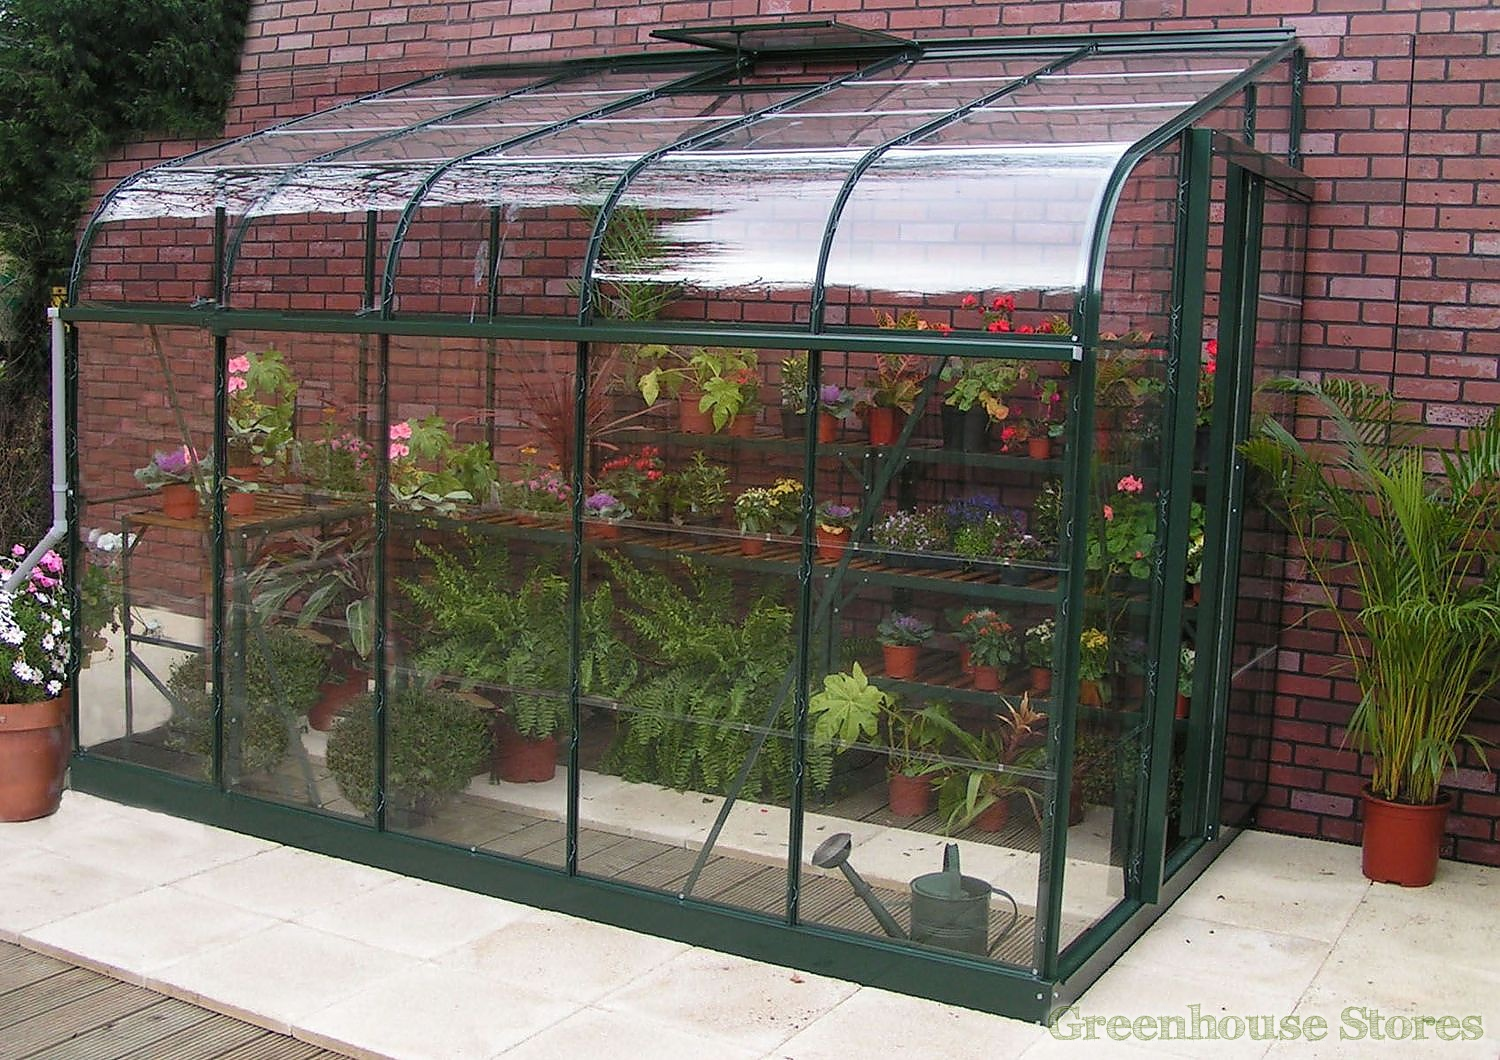 10 Small House Designs That Break Preconceptions About Small Size: Halls Silverline Green 6x8 Lean To Greenhouse Toughened